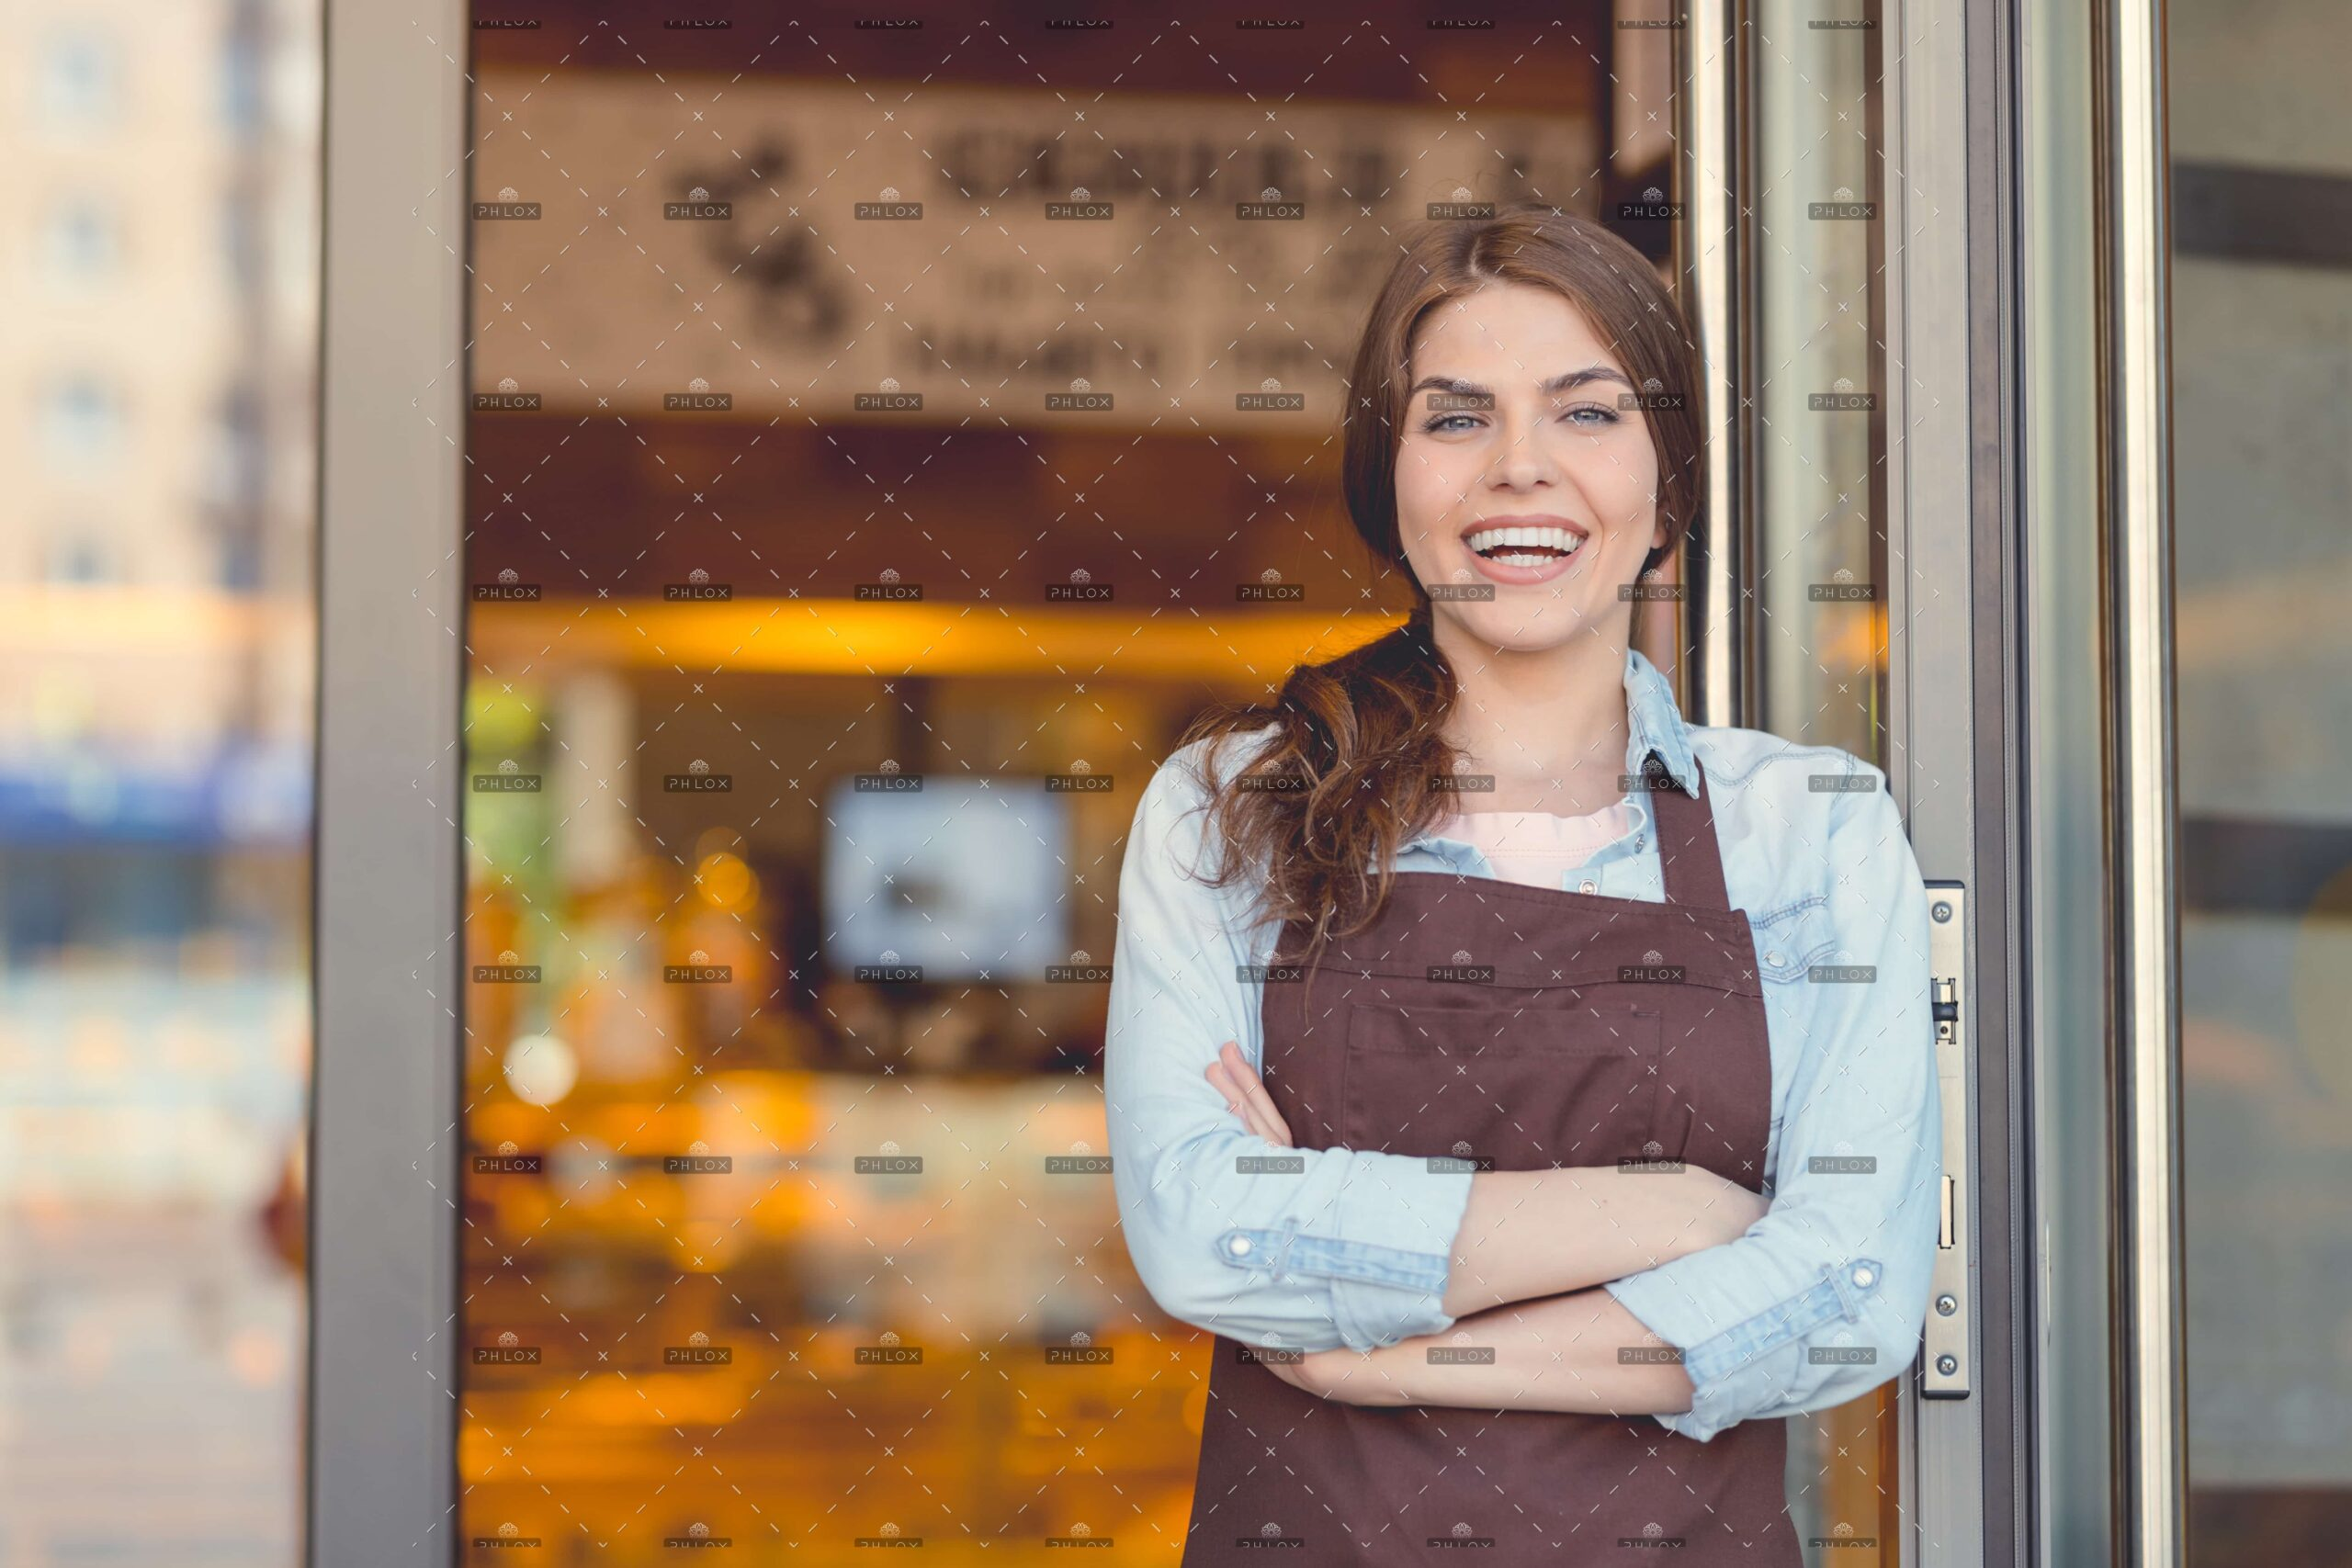 demo-attachment-679-op_smiling-woman-in-the-bakery-JYL2XCB